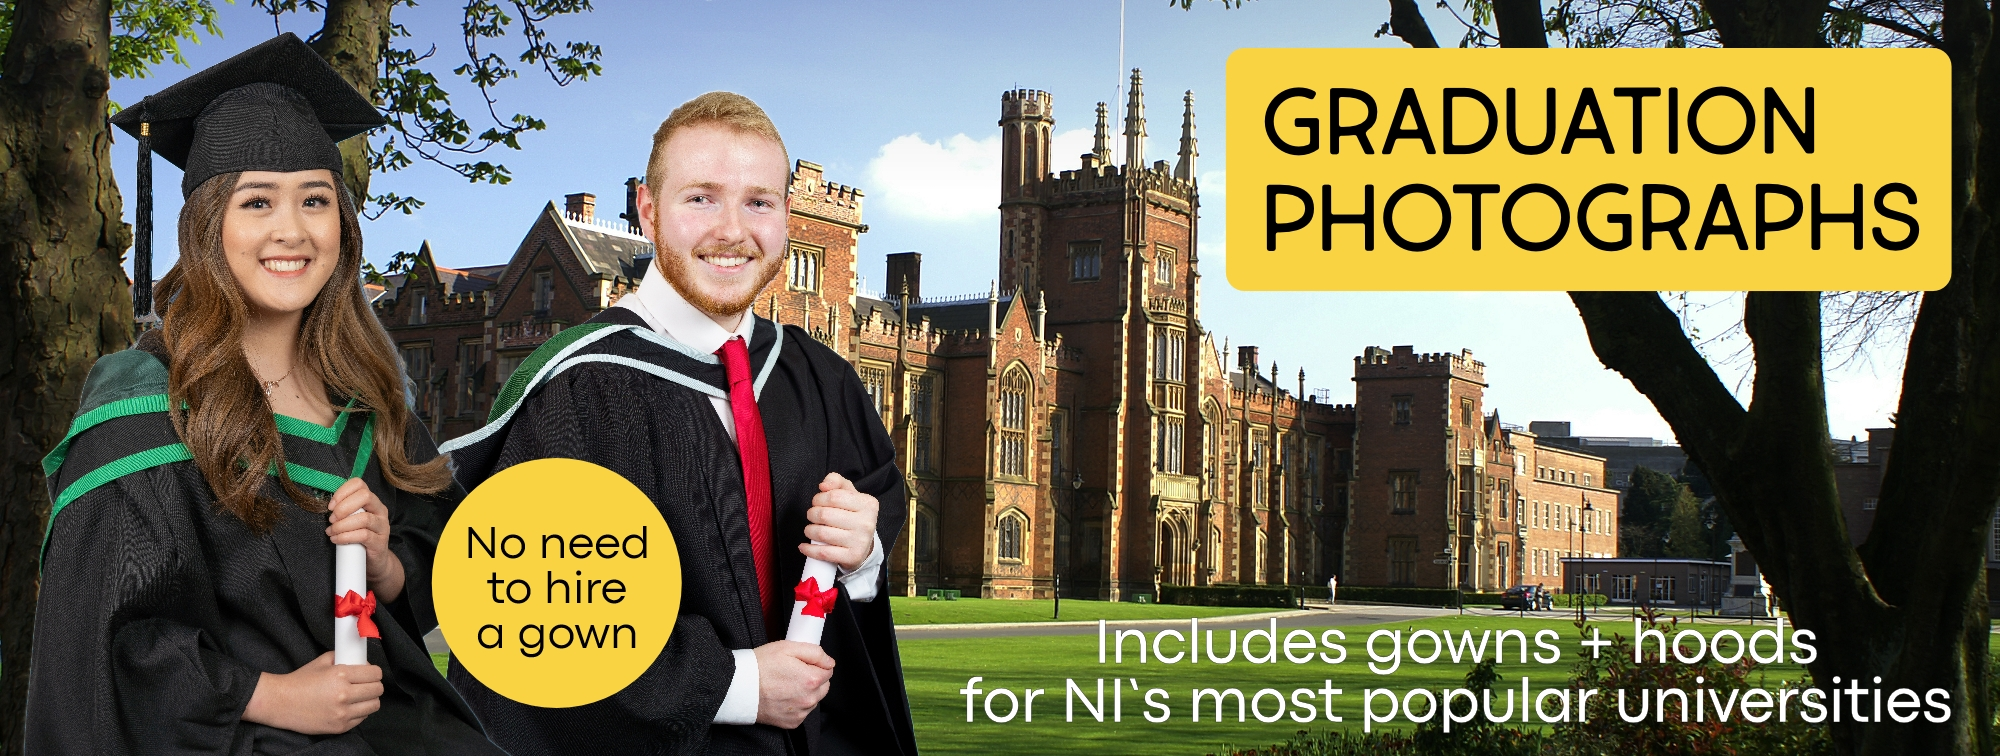 Graduation Photography Belfast Northern Ireland - Official Gowns for Queen's University, Unversity of Ulster and Open University